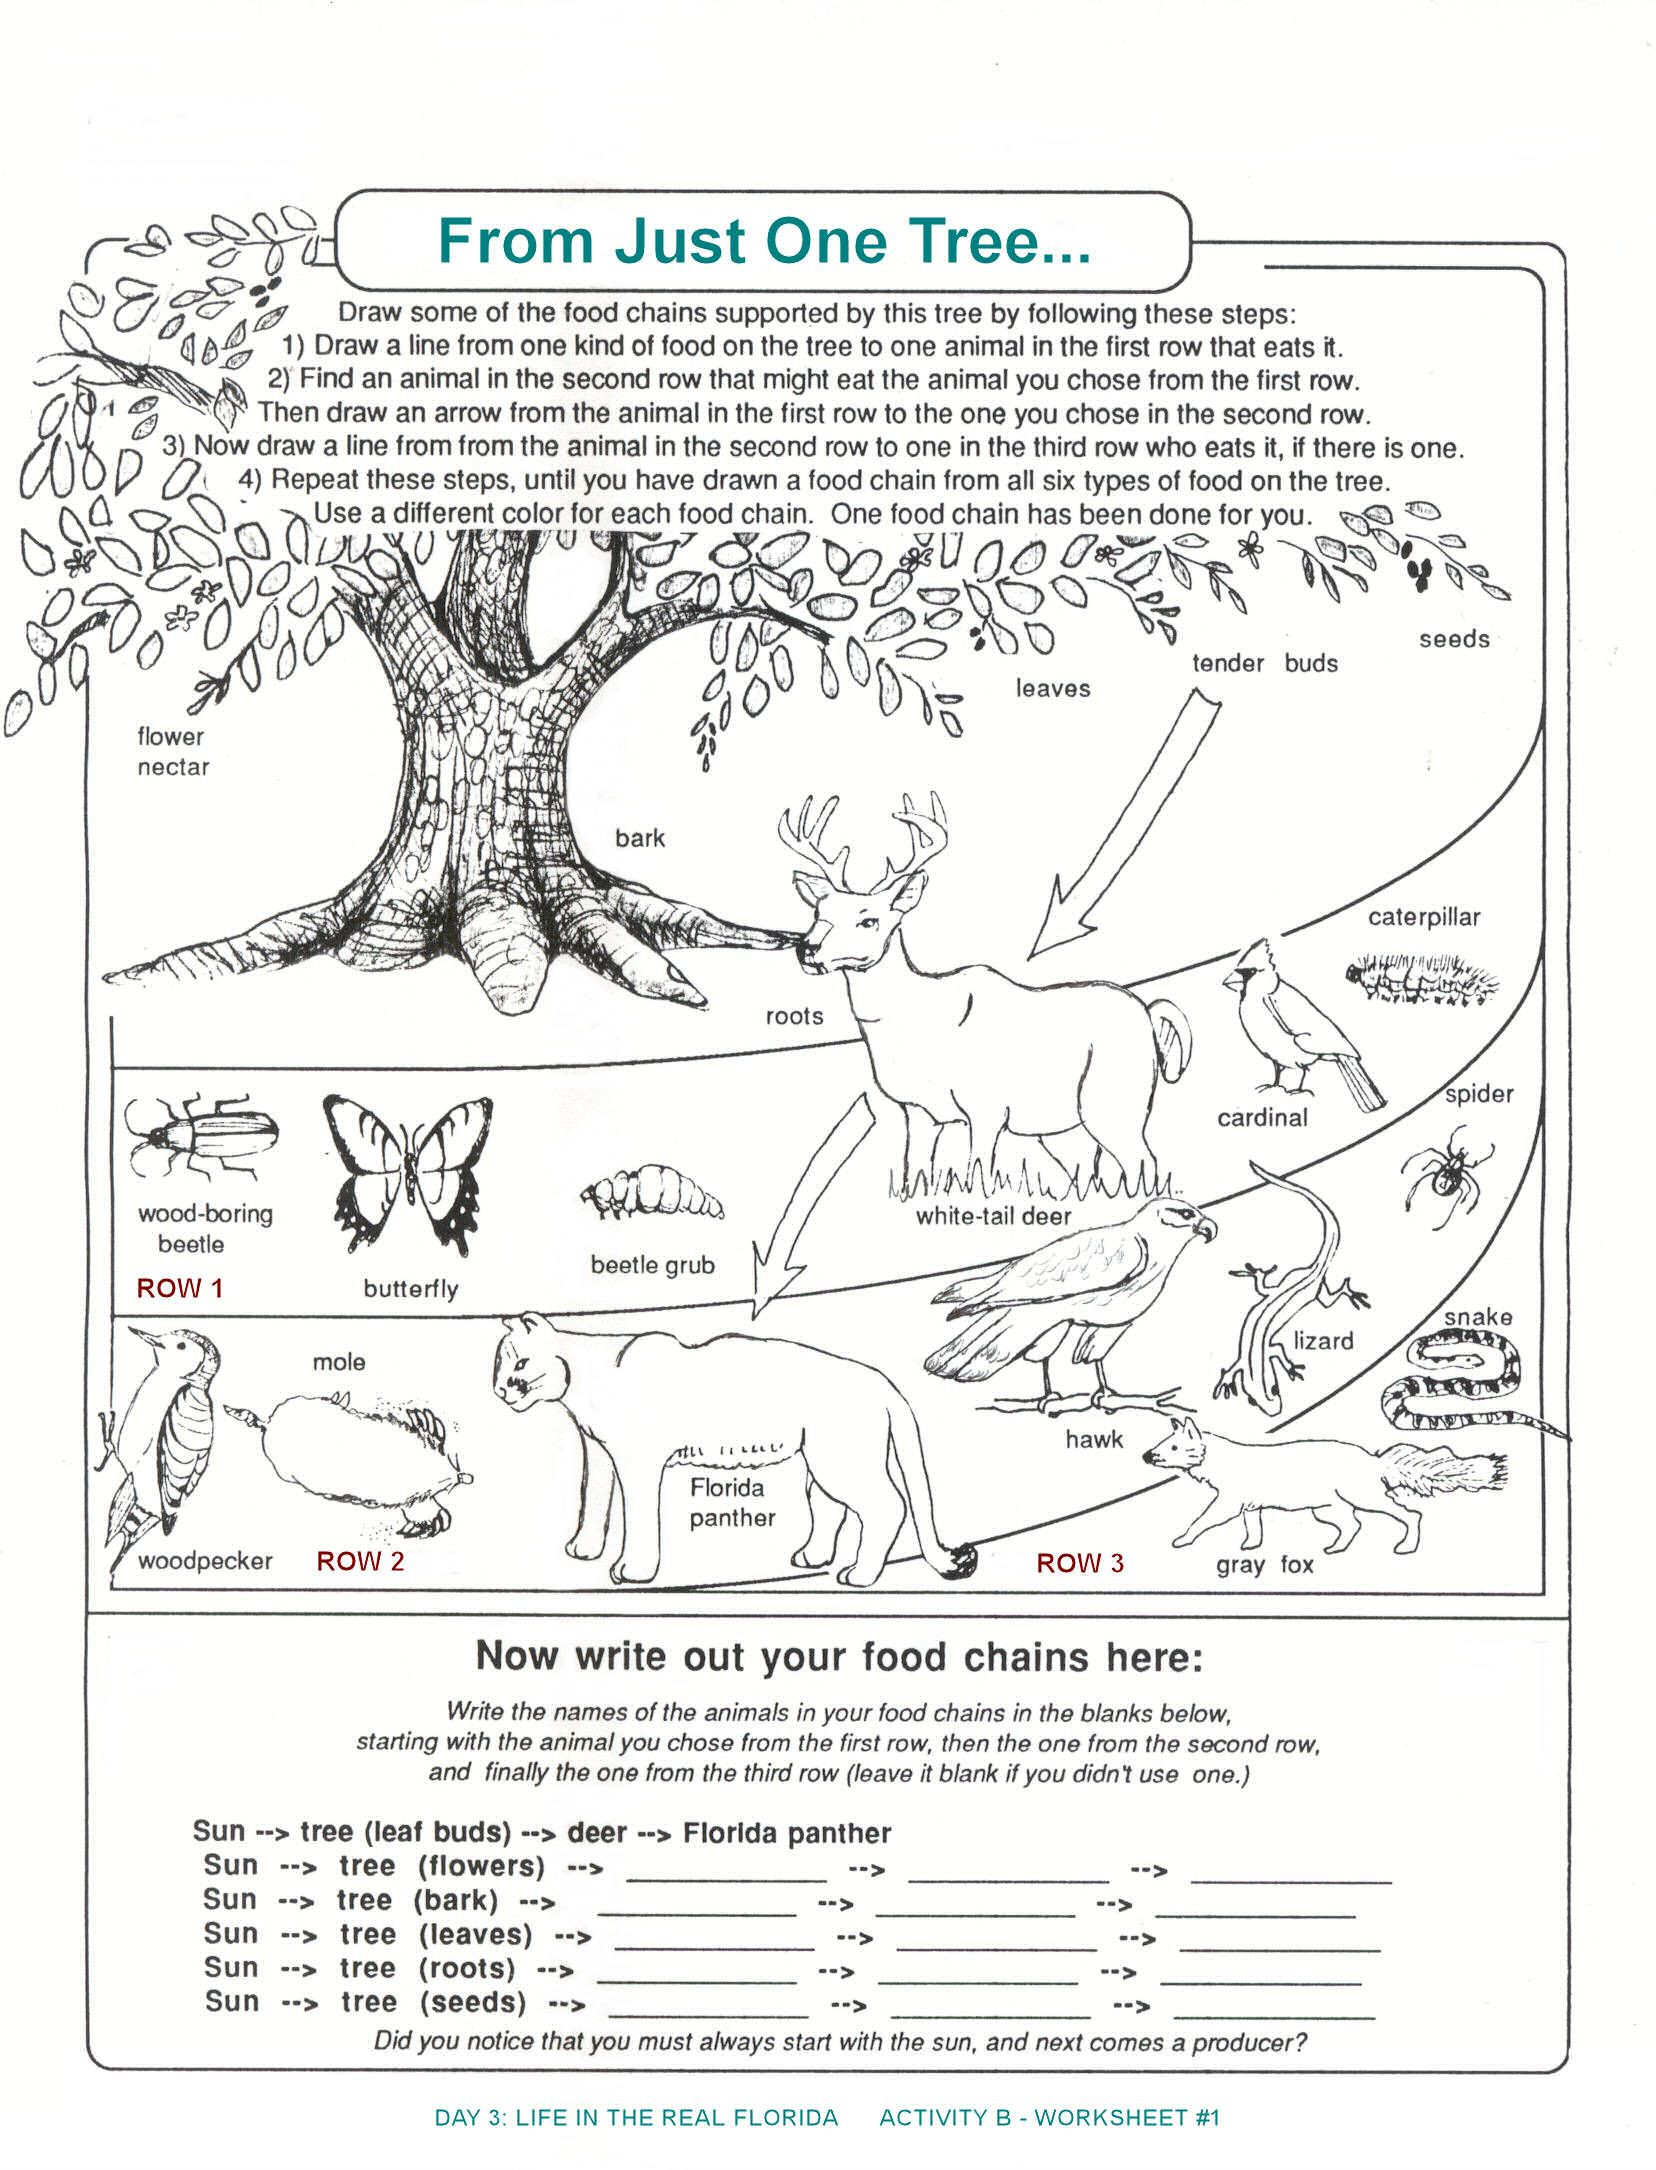 7th Grade Life Science Worksheets What Do We Lose with Deforestation